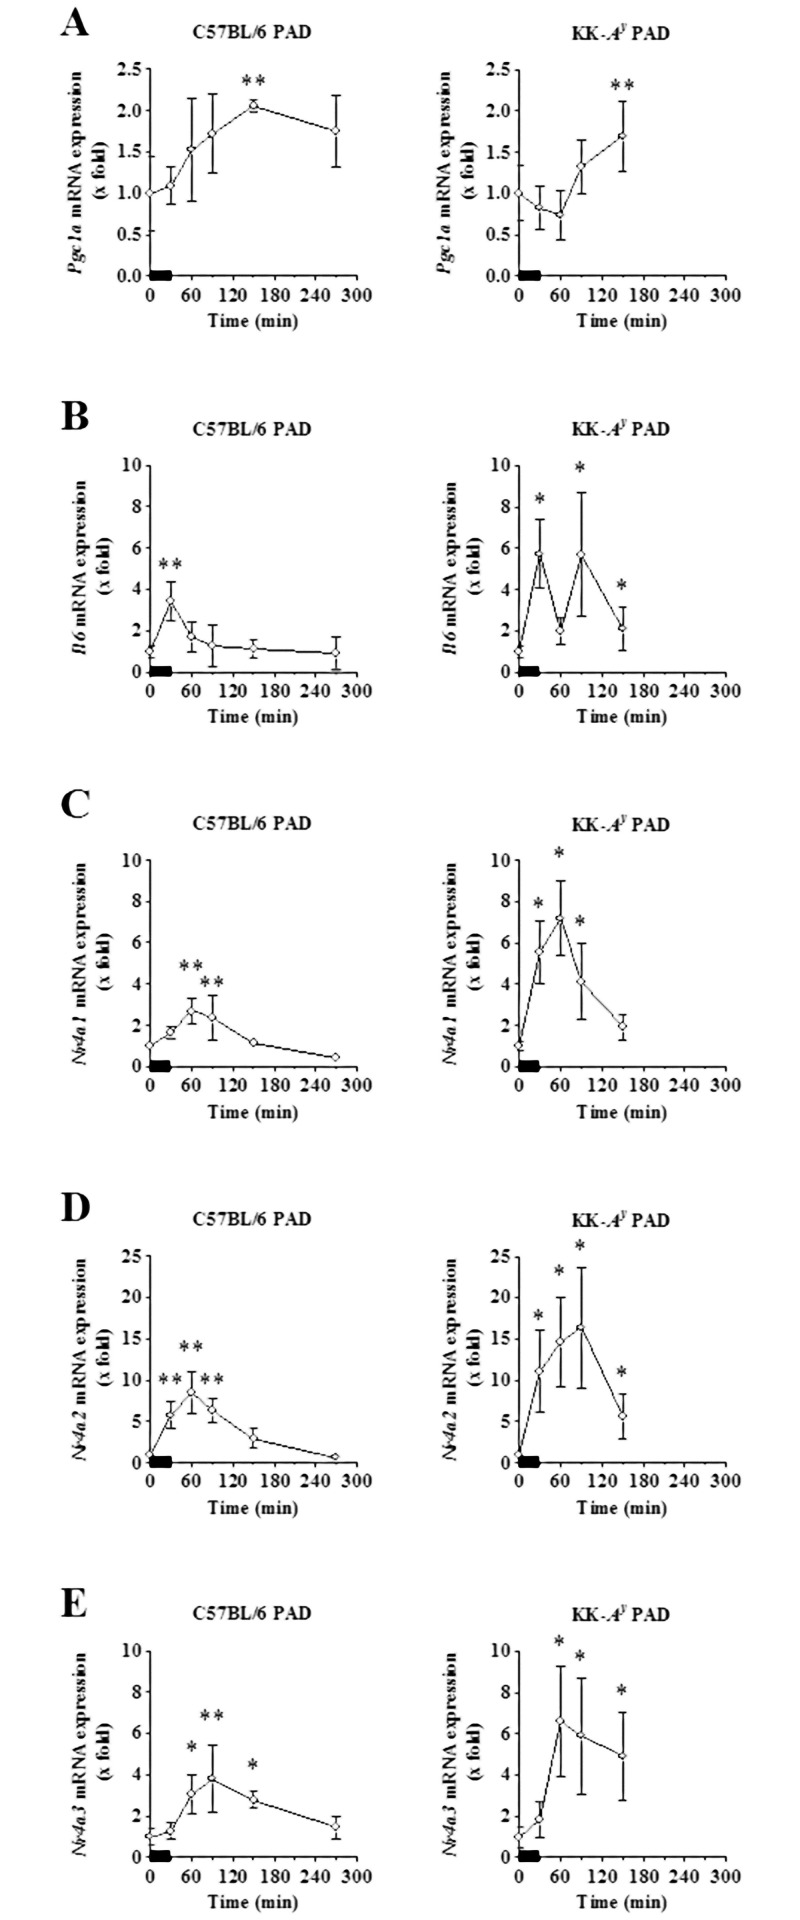 Acute effects of treadmill exercise on the mRNA expression of known exercise-responsive genes. The soleus muscles of exercised C57BL/6 PAD mice (n = 4 per time point, total 24, left panels) and KK- A y PAD mice (n = 6 per time point, total 30, right panels) were obtained before and after the fifth treadmill exercise session. The mRNA expression levels of Pgc1a (A), Il6 (B), Nr4a1 (C), Nr4a2 (D), and Nr4a3 (E) in the soleus muscles were determined by qRT-PCR, normalized to Rplp0 expression level, and calculated relative to the pre-exercise group (0 min). The results are expressed as the mean ± SD. * p